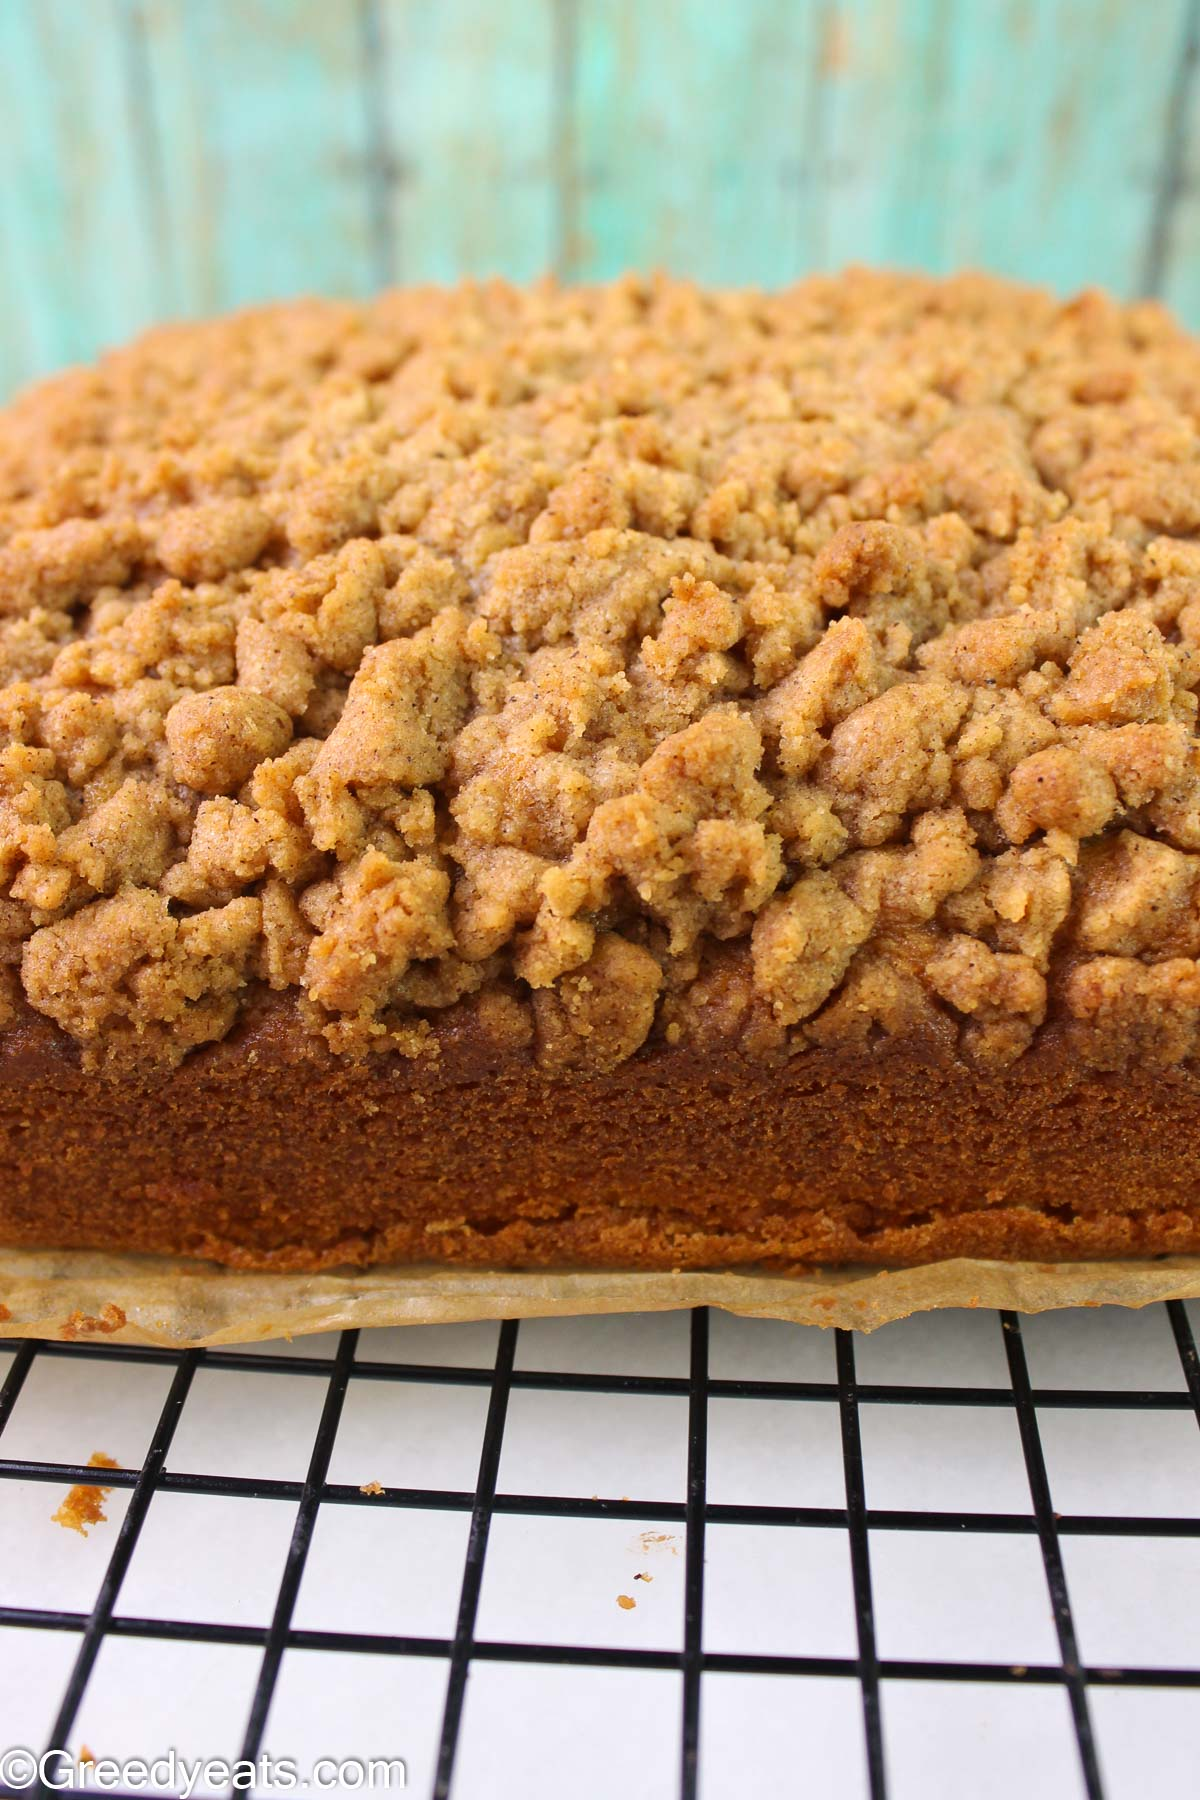 Homemade coffee cake with thick cinnamon crumb topping cooling on a wire rack.